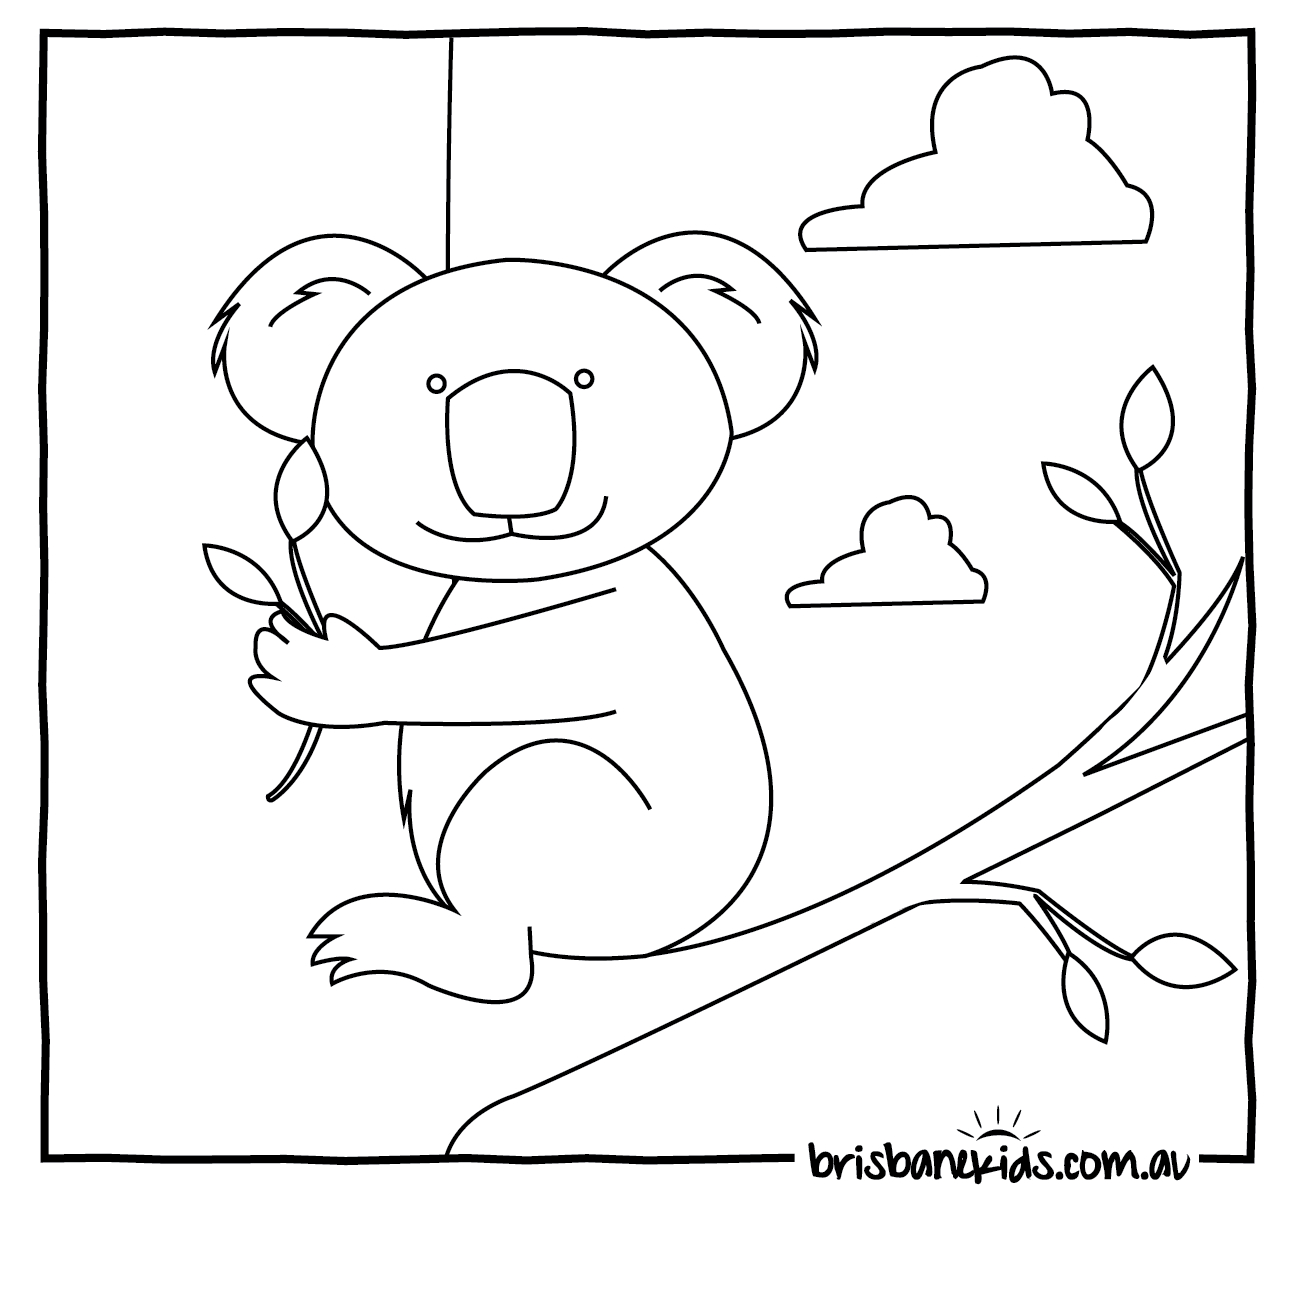 Australian Animals Colouring Pages | Brisbane Kids - Free Printable Australian Animals